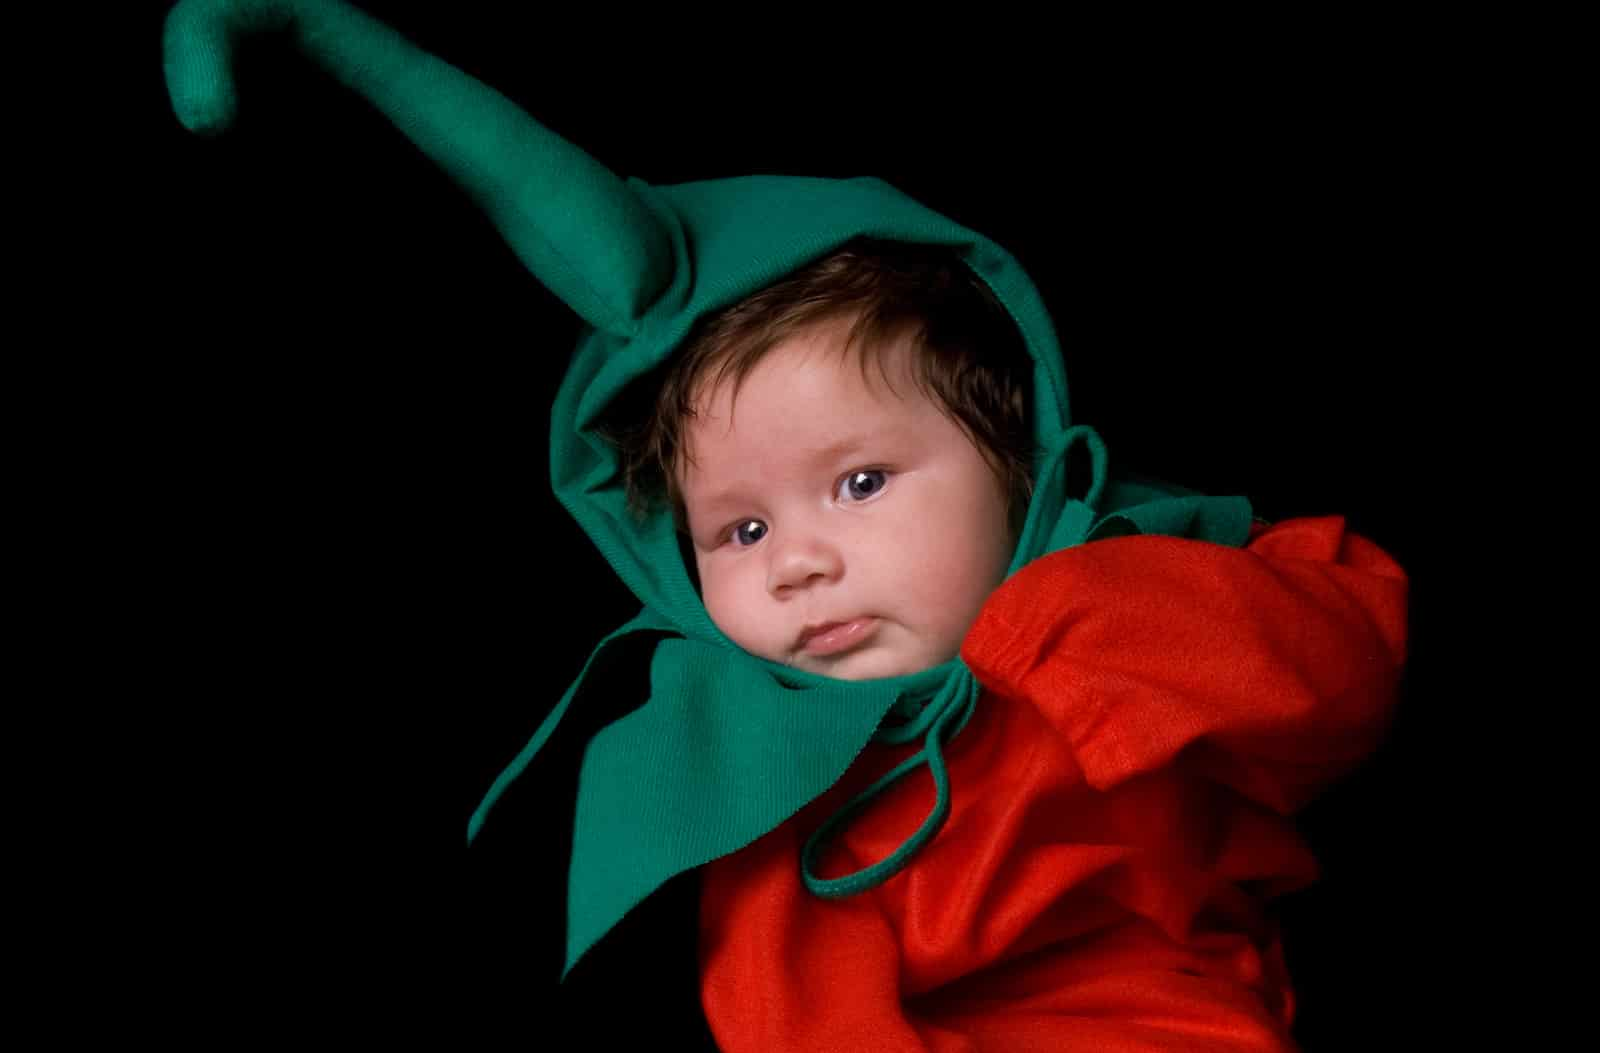 Top Chili Pepper Costume Options For The Whole Family